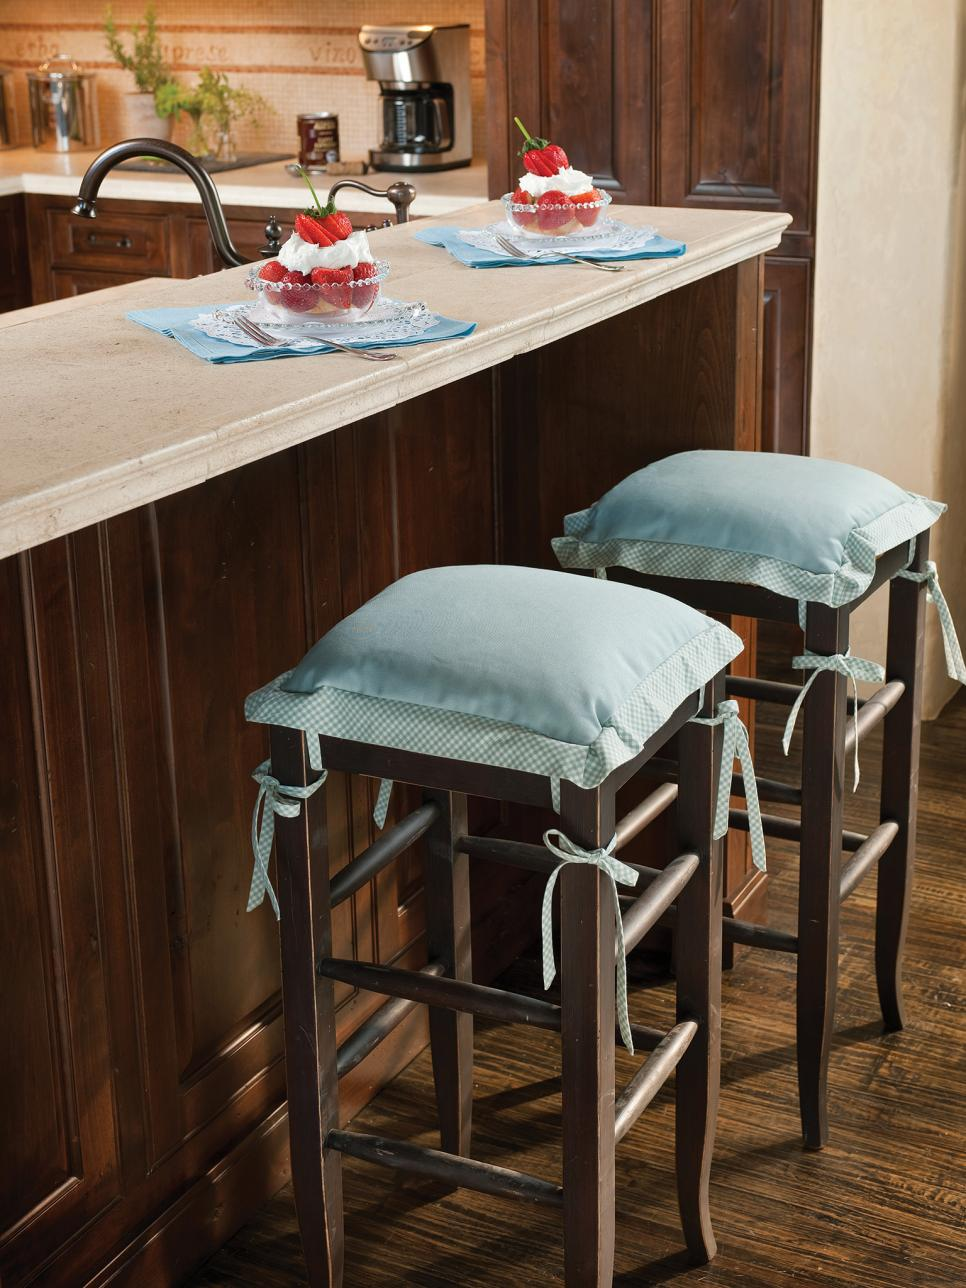 Wooden Kitchen Bar Stools With Blue Cushions